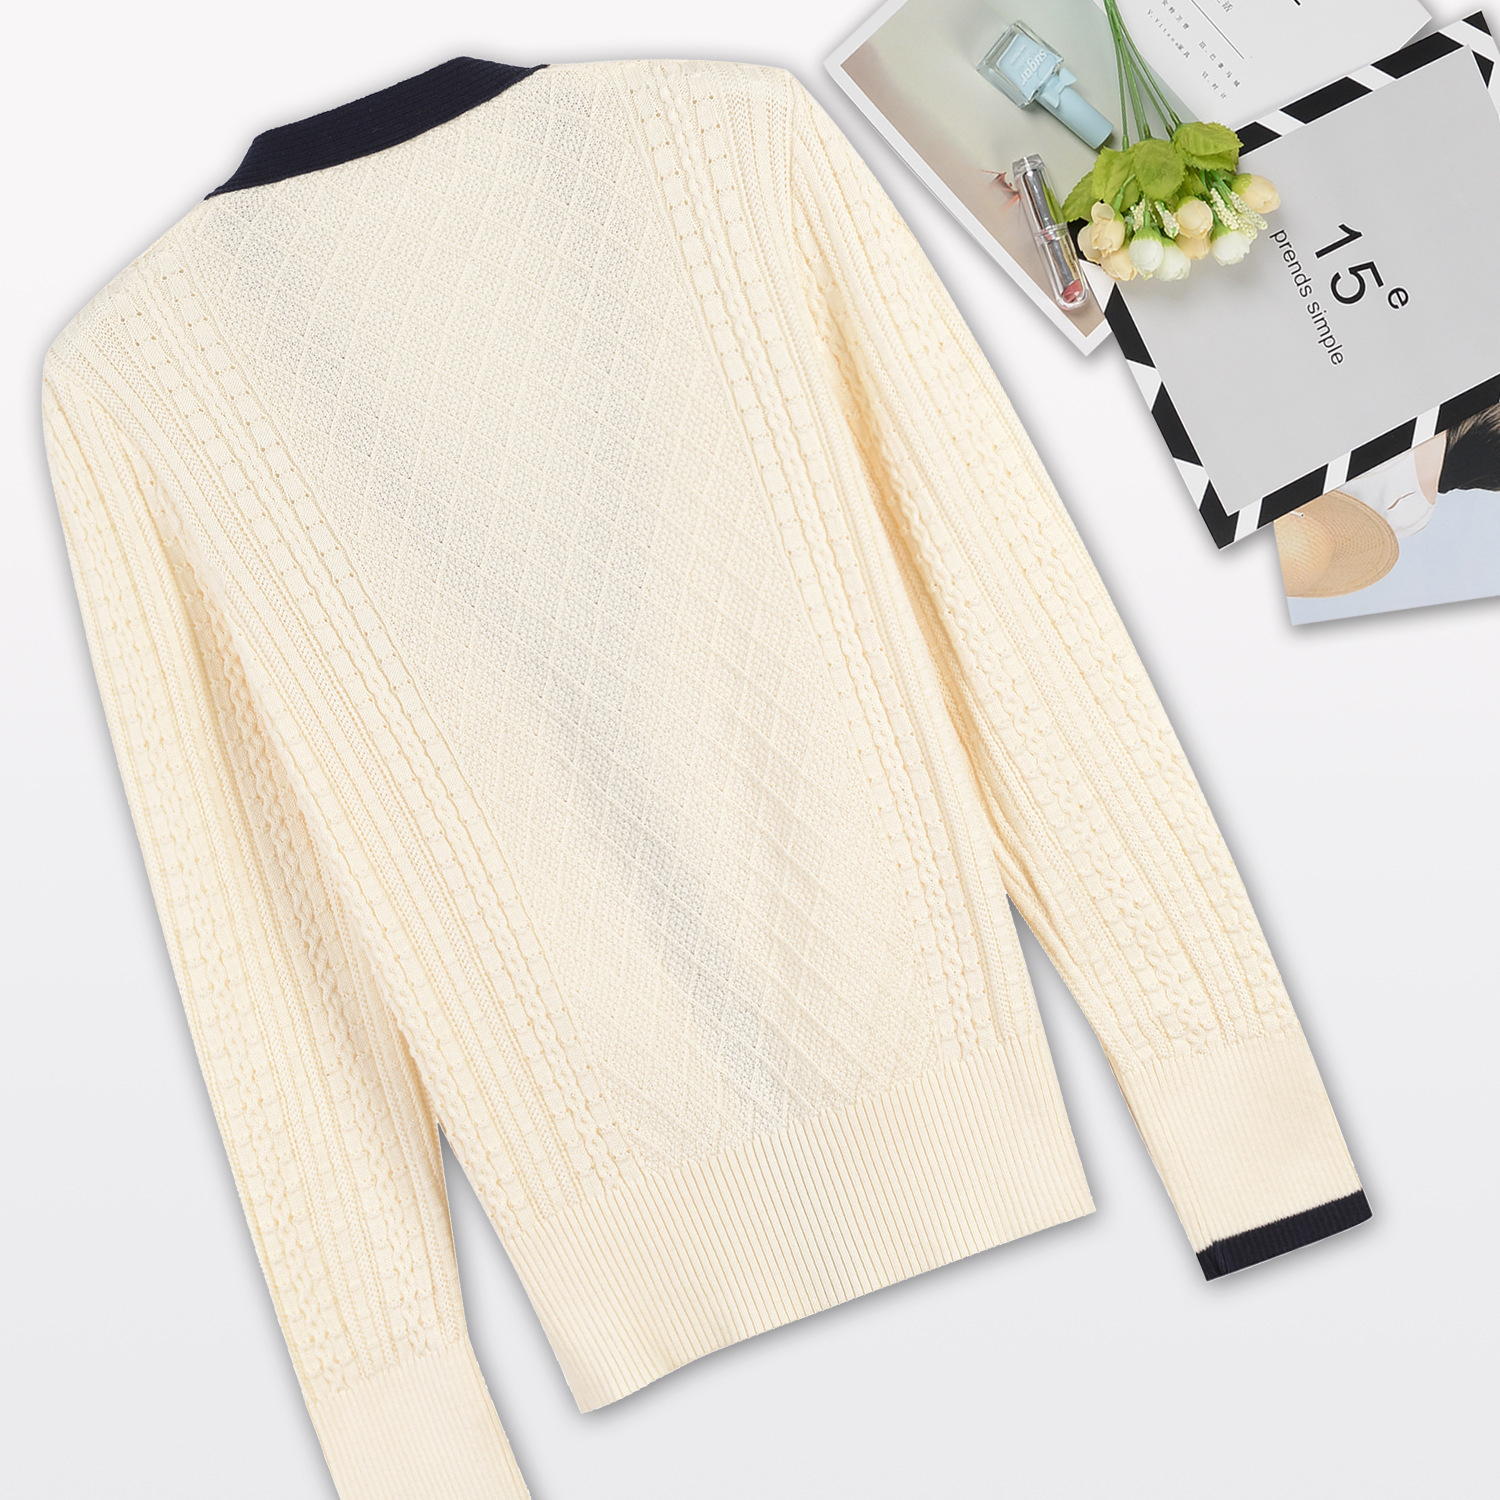 2018 New Fasion Autumn Winter Ladies Pure Color V-neck Knitted Cardigan + Short Ball Gown Set Women Girls Skirt Suits C19040401